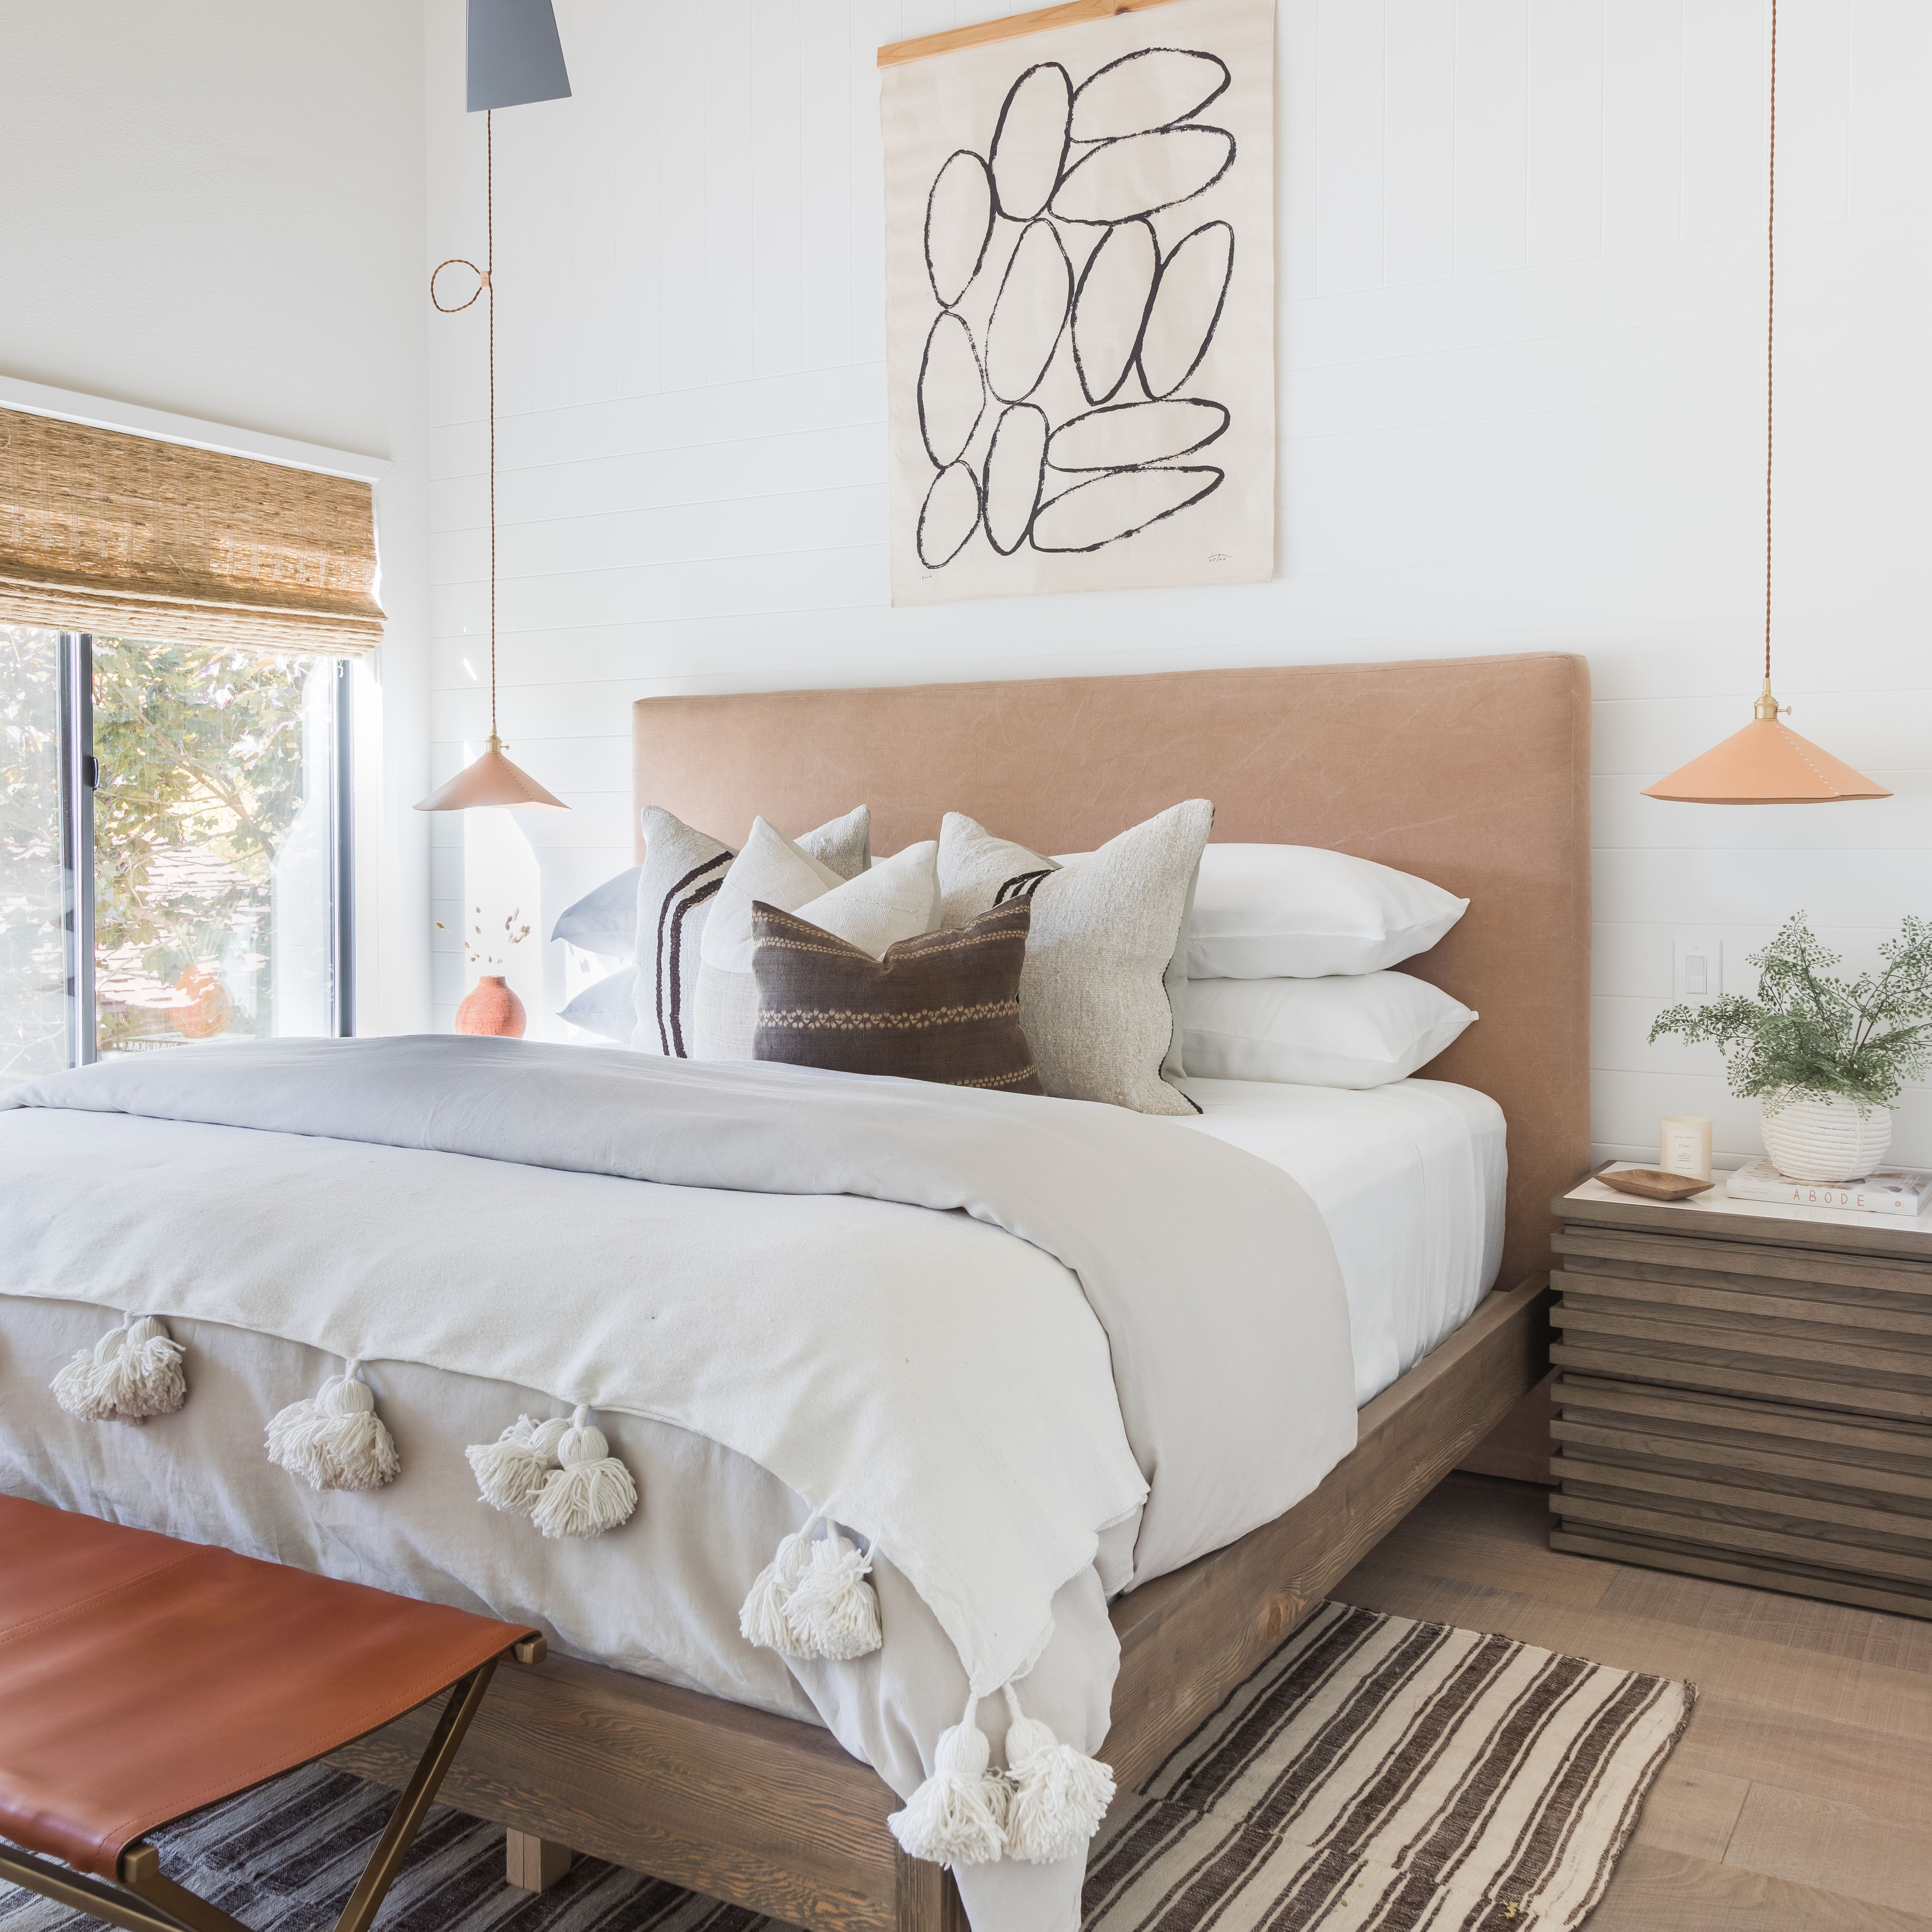 12 Bedroom Wall Decor Ideas to Elevate Your Space